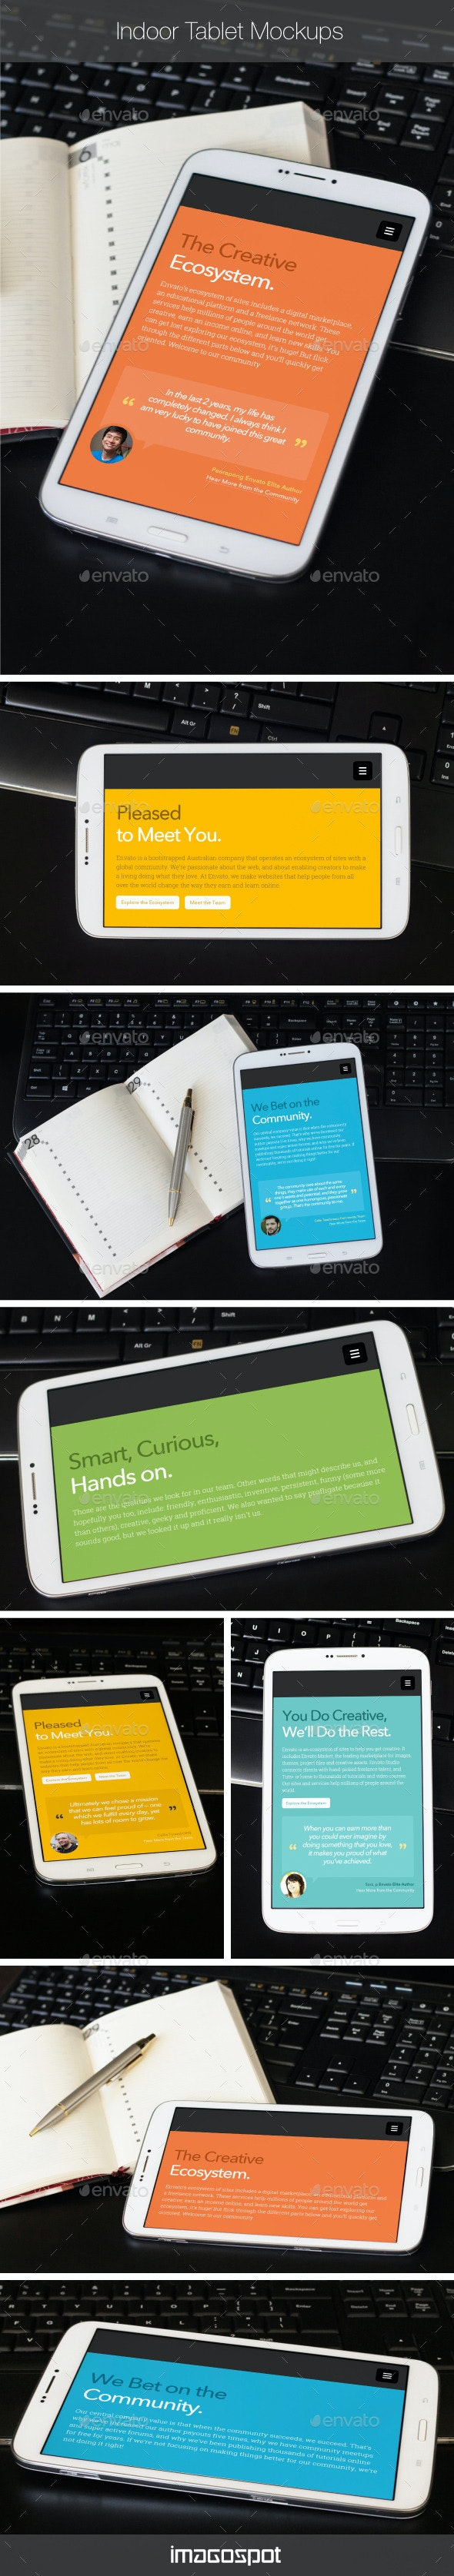 Photorealistic Indoor Tablet Mockups - Mobile Displays